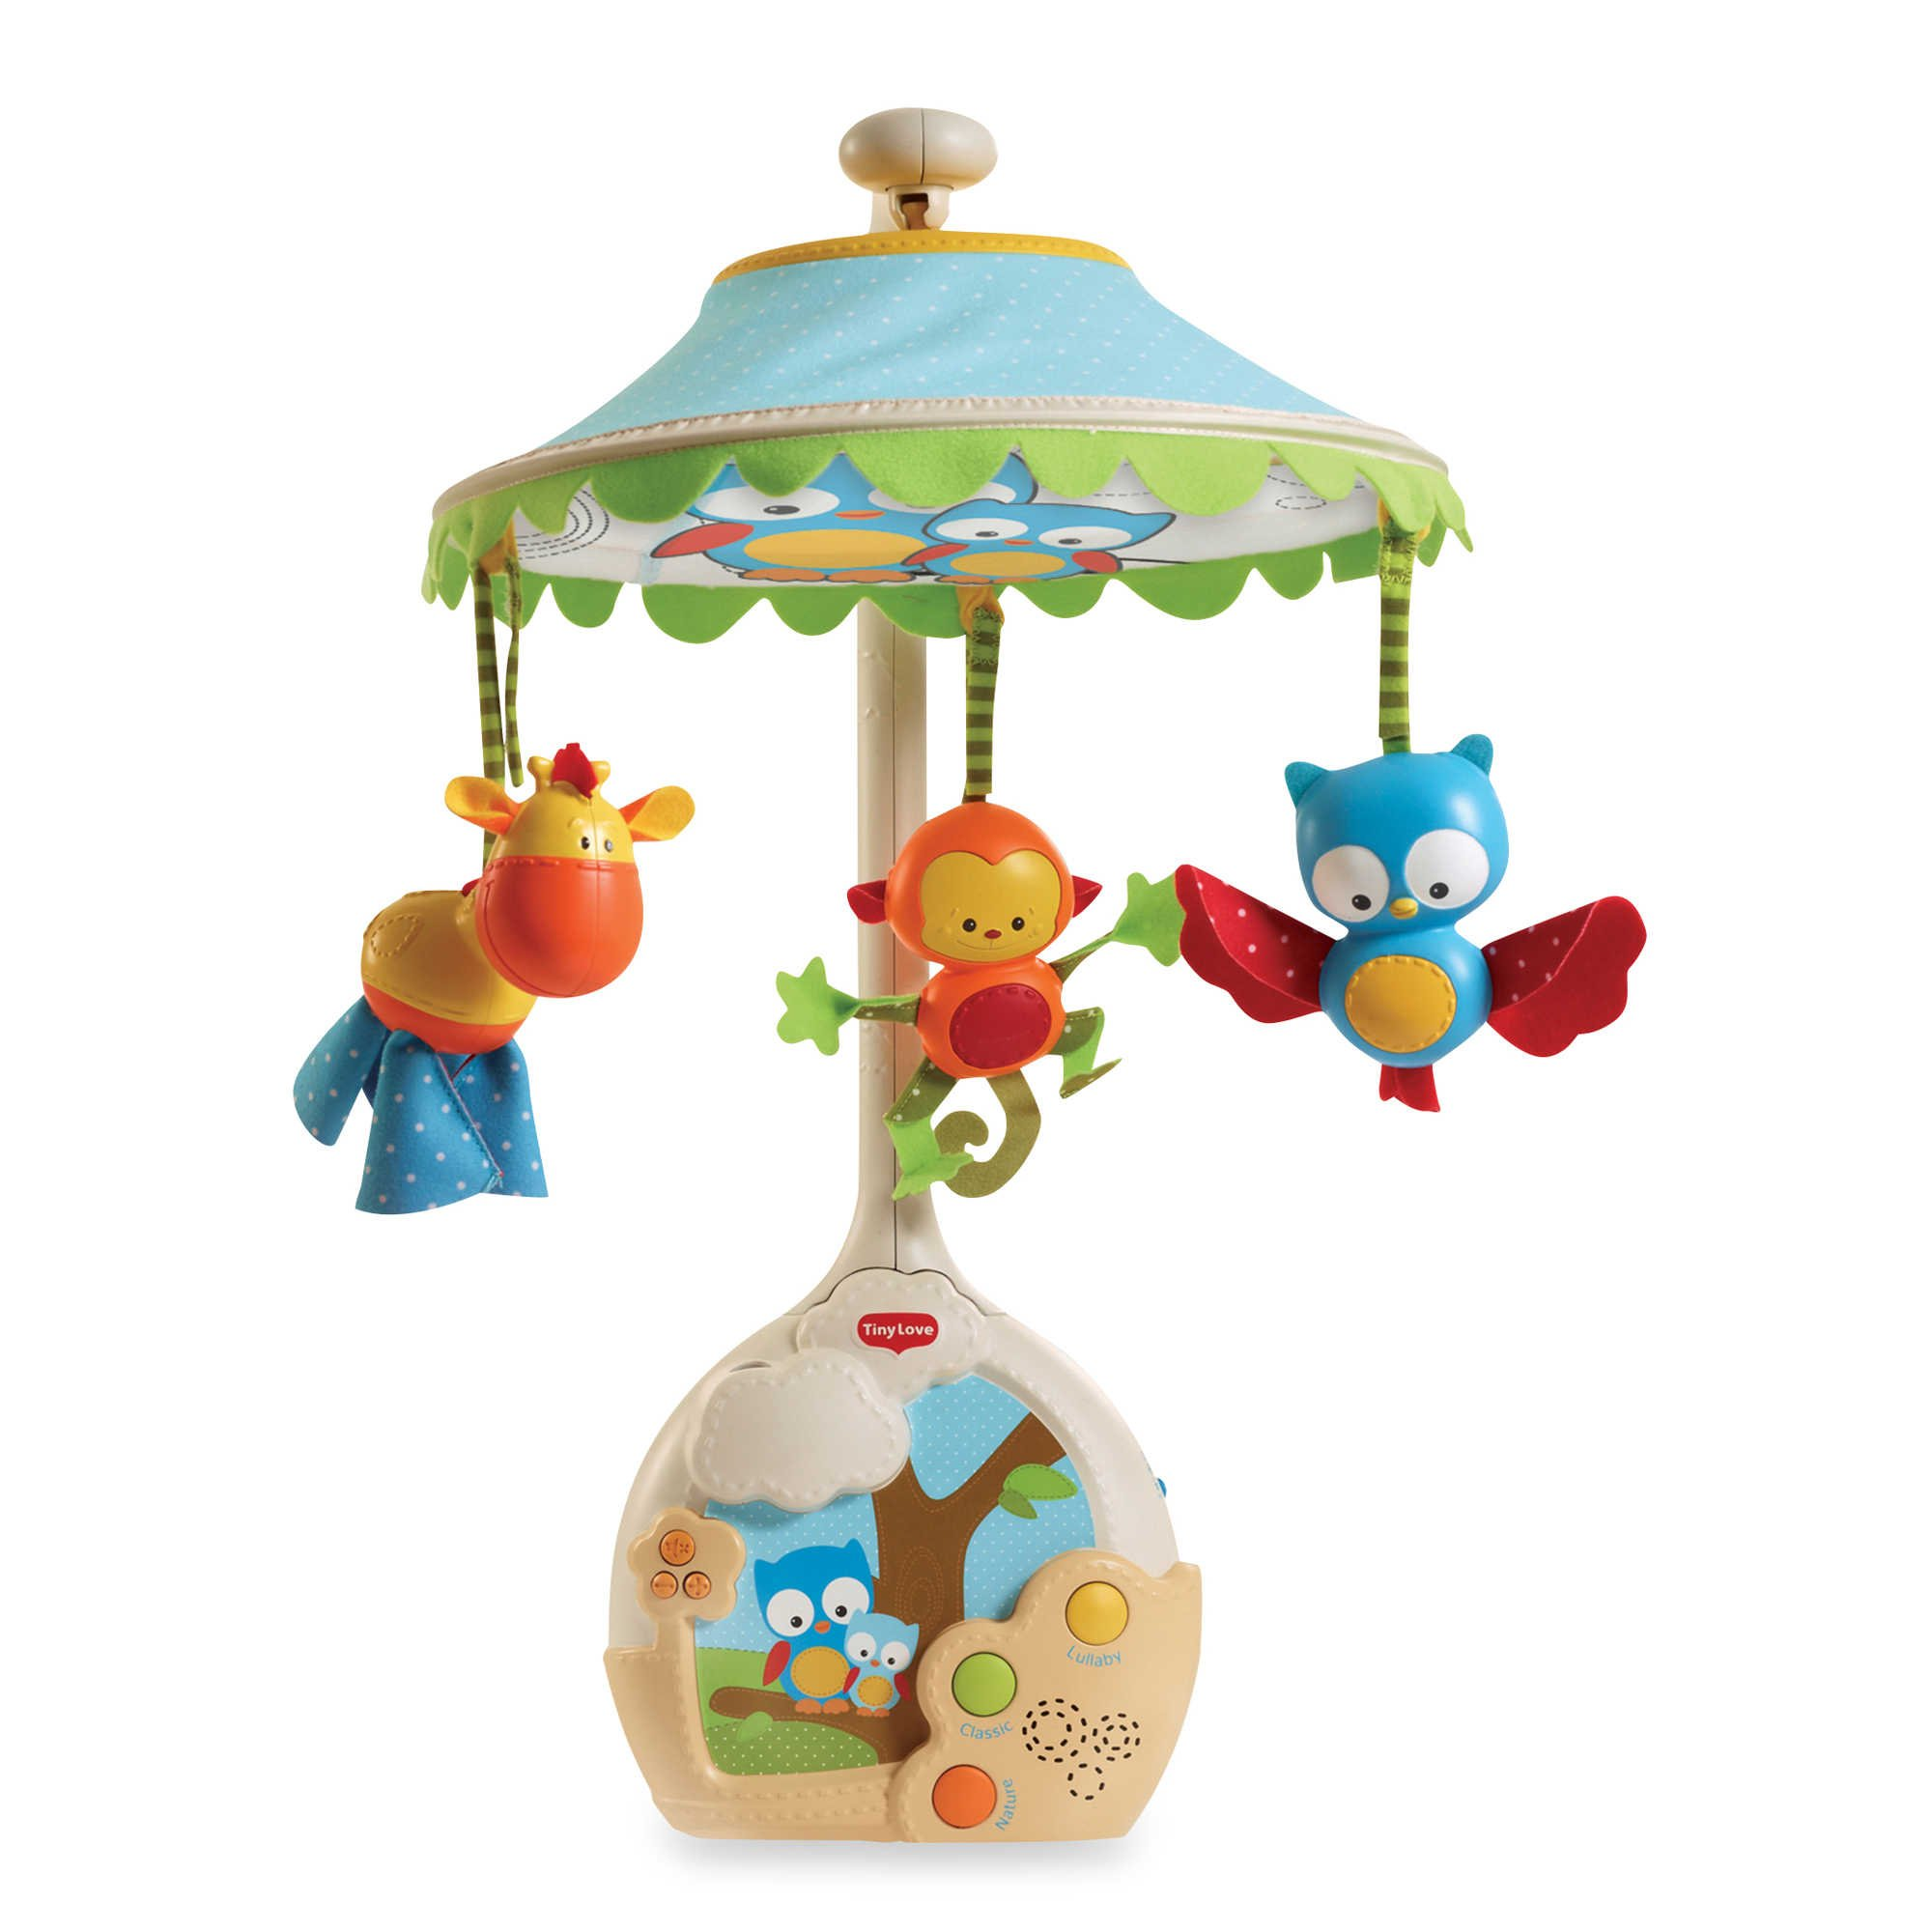 Tiny Love 3-in-1 Magical Night Musical Mobile, Converts to Starry Night Lamp product image